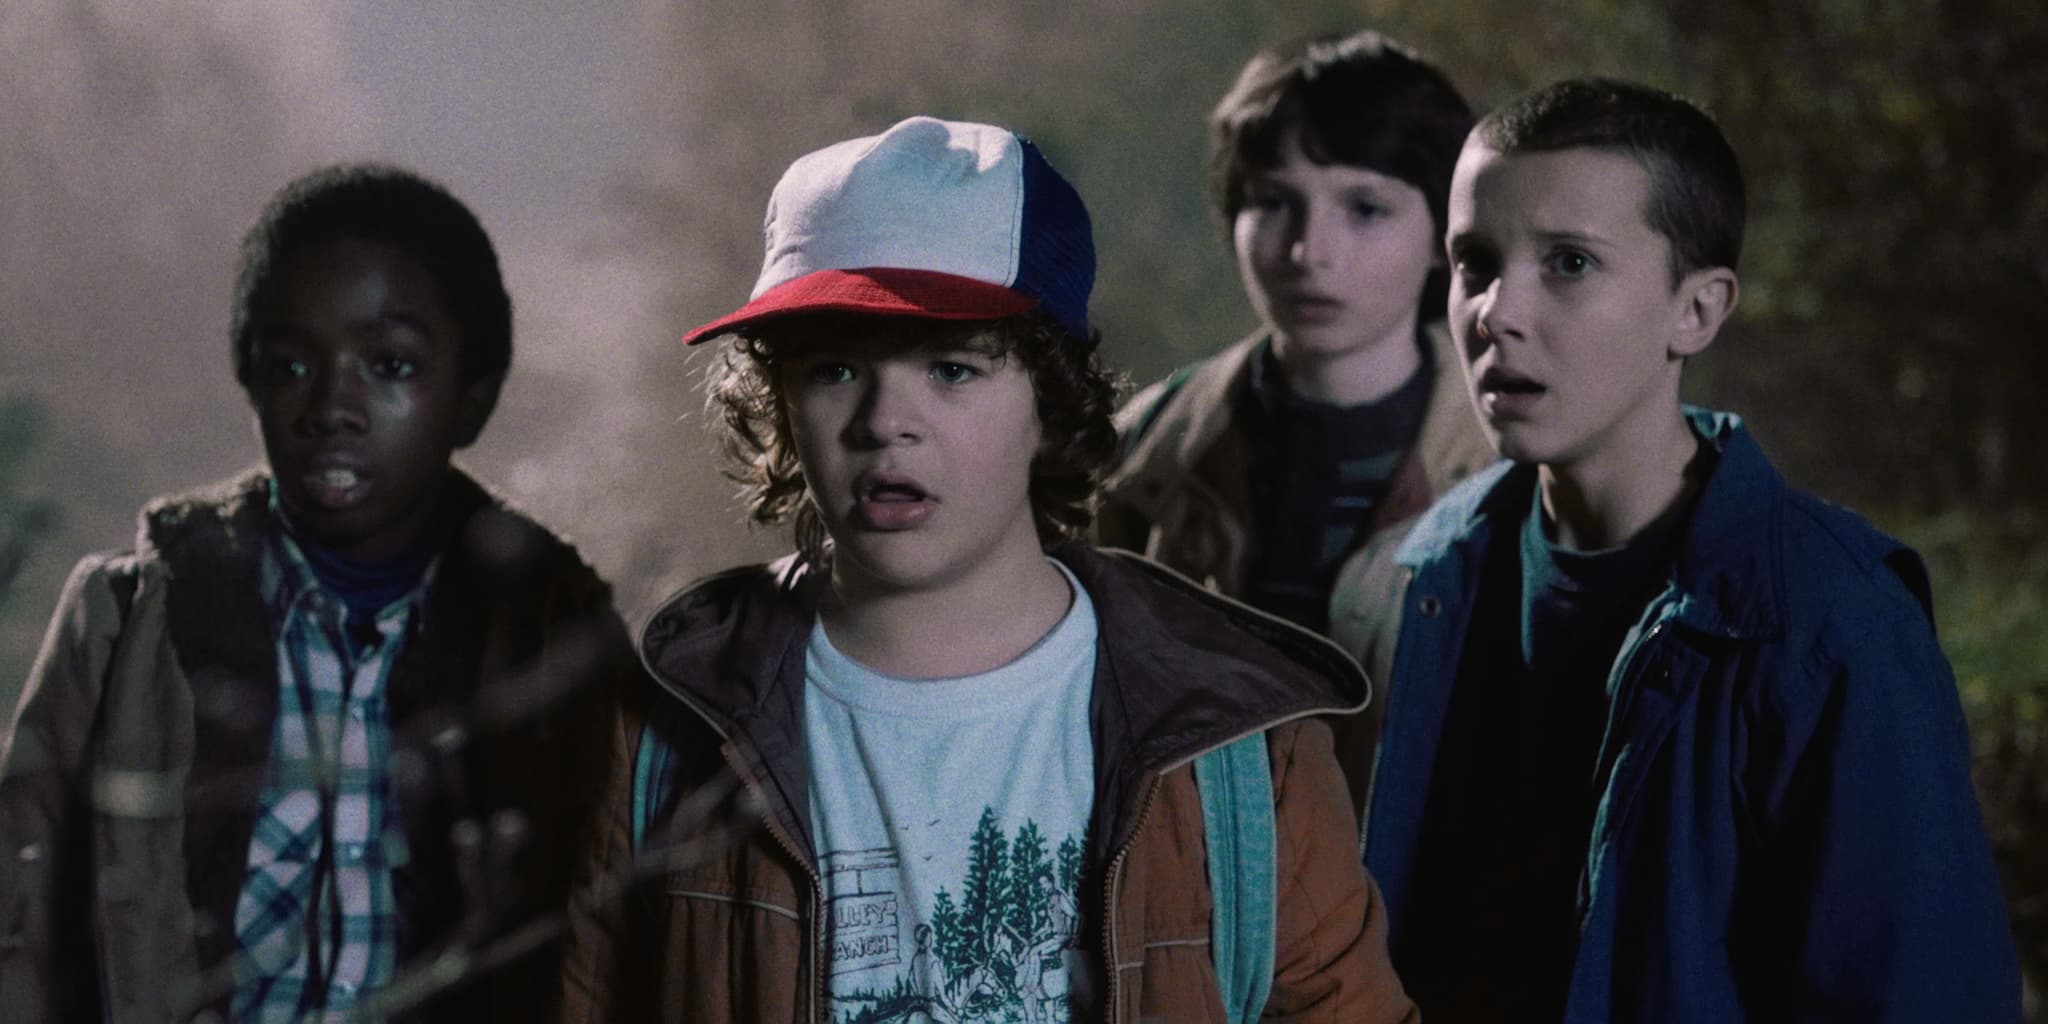 The Boys of Stranger Things with the myserious Eleven